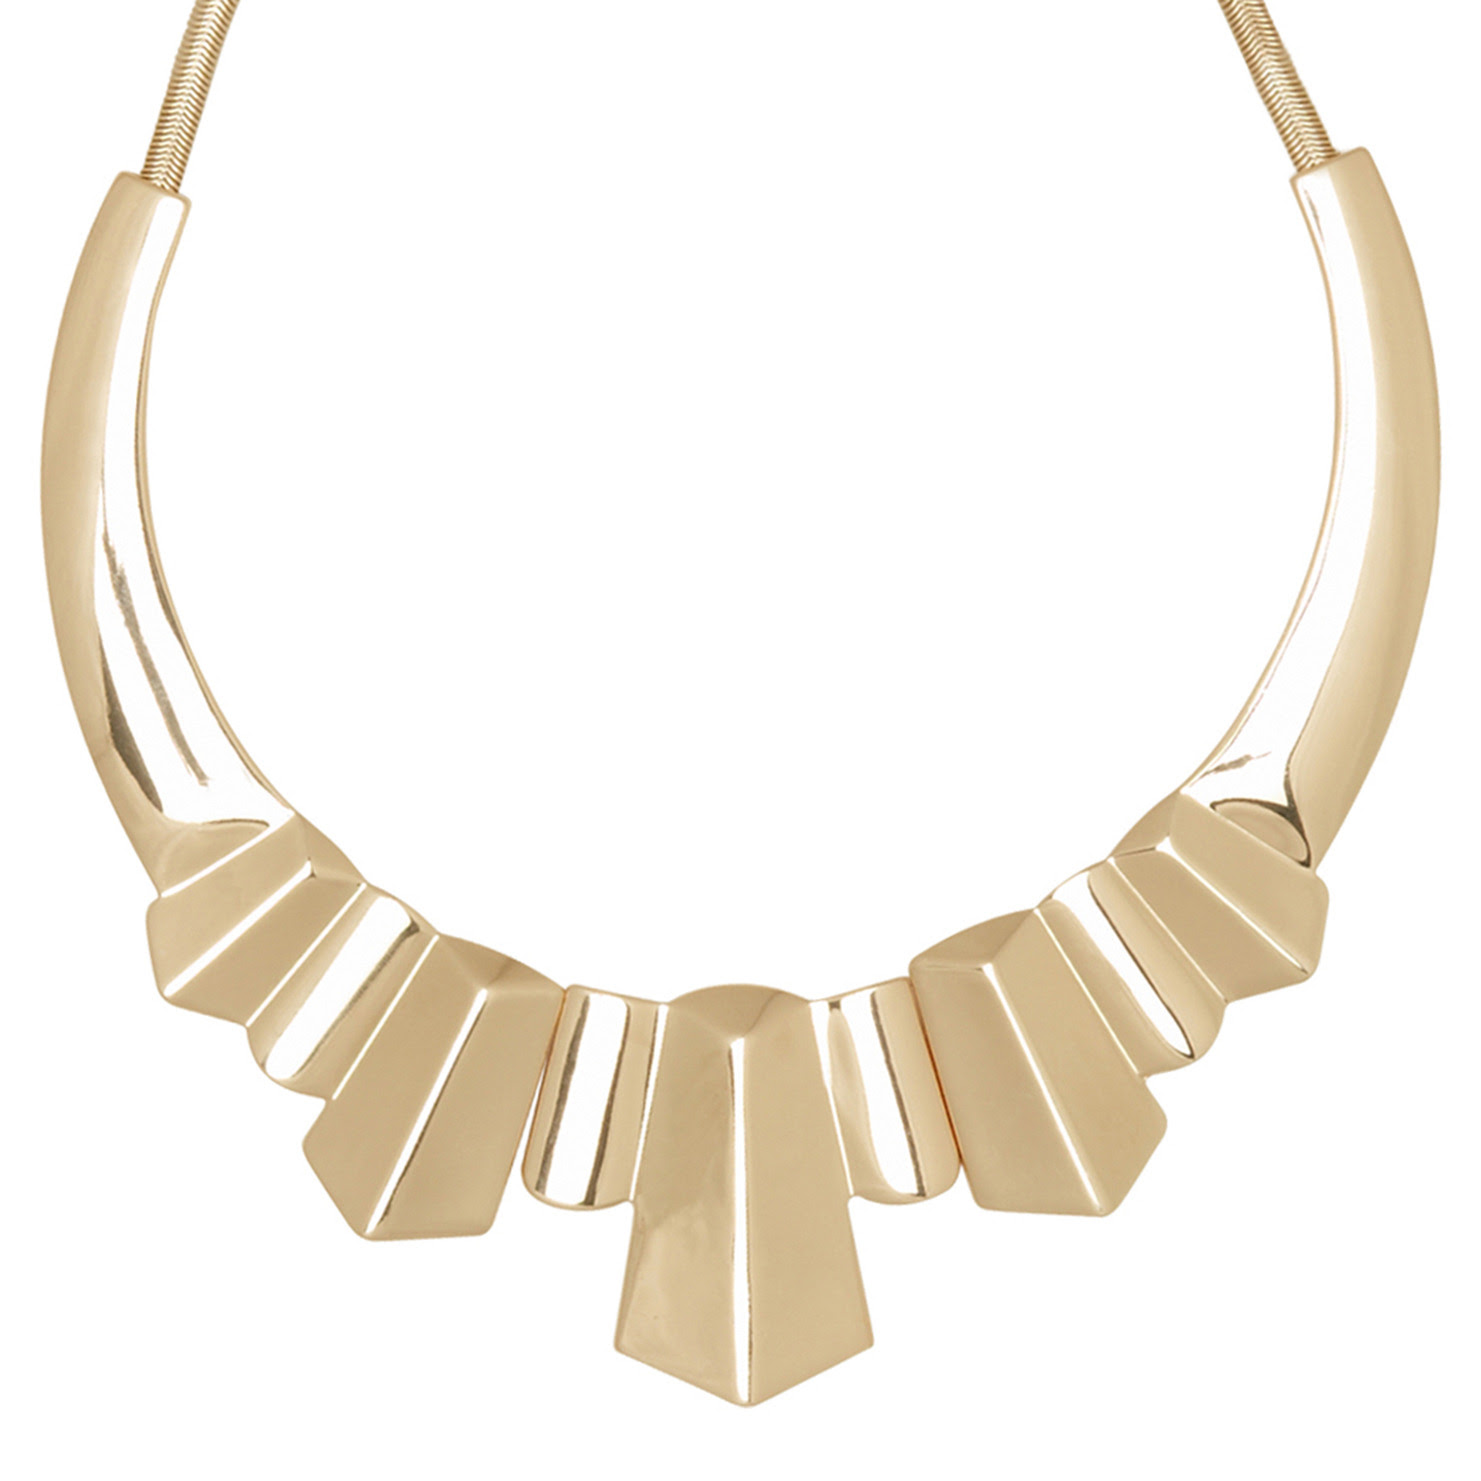 aaabddd23 LIPENSKY - accessories's necklaces from ALDO